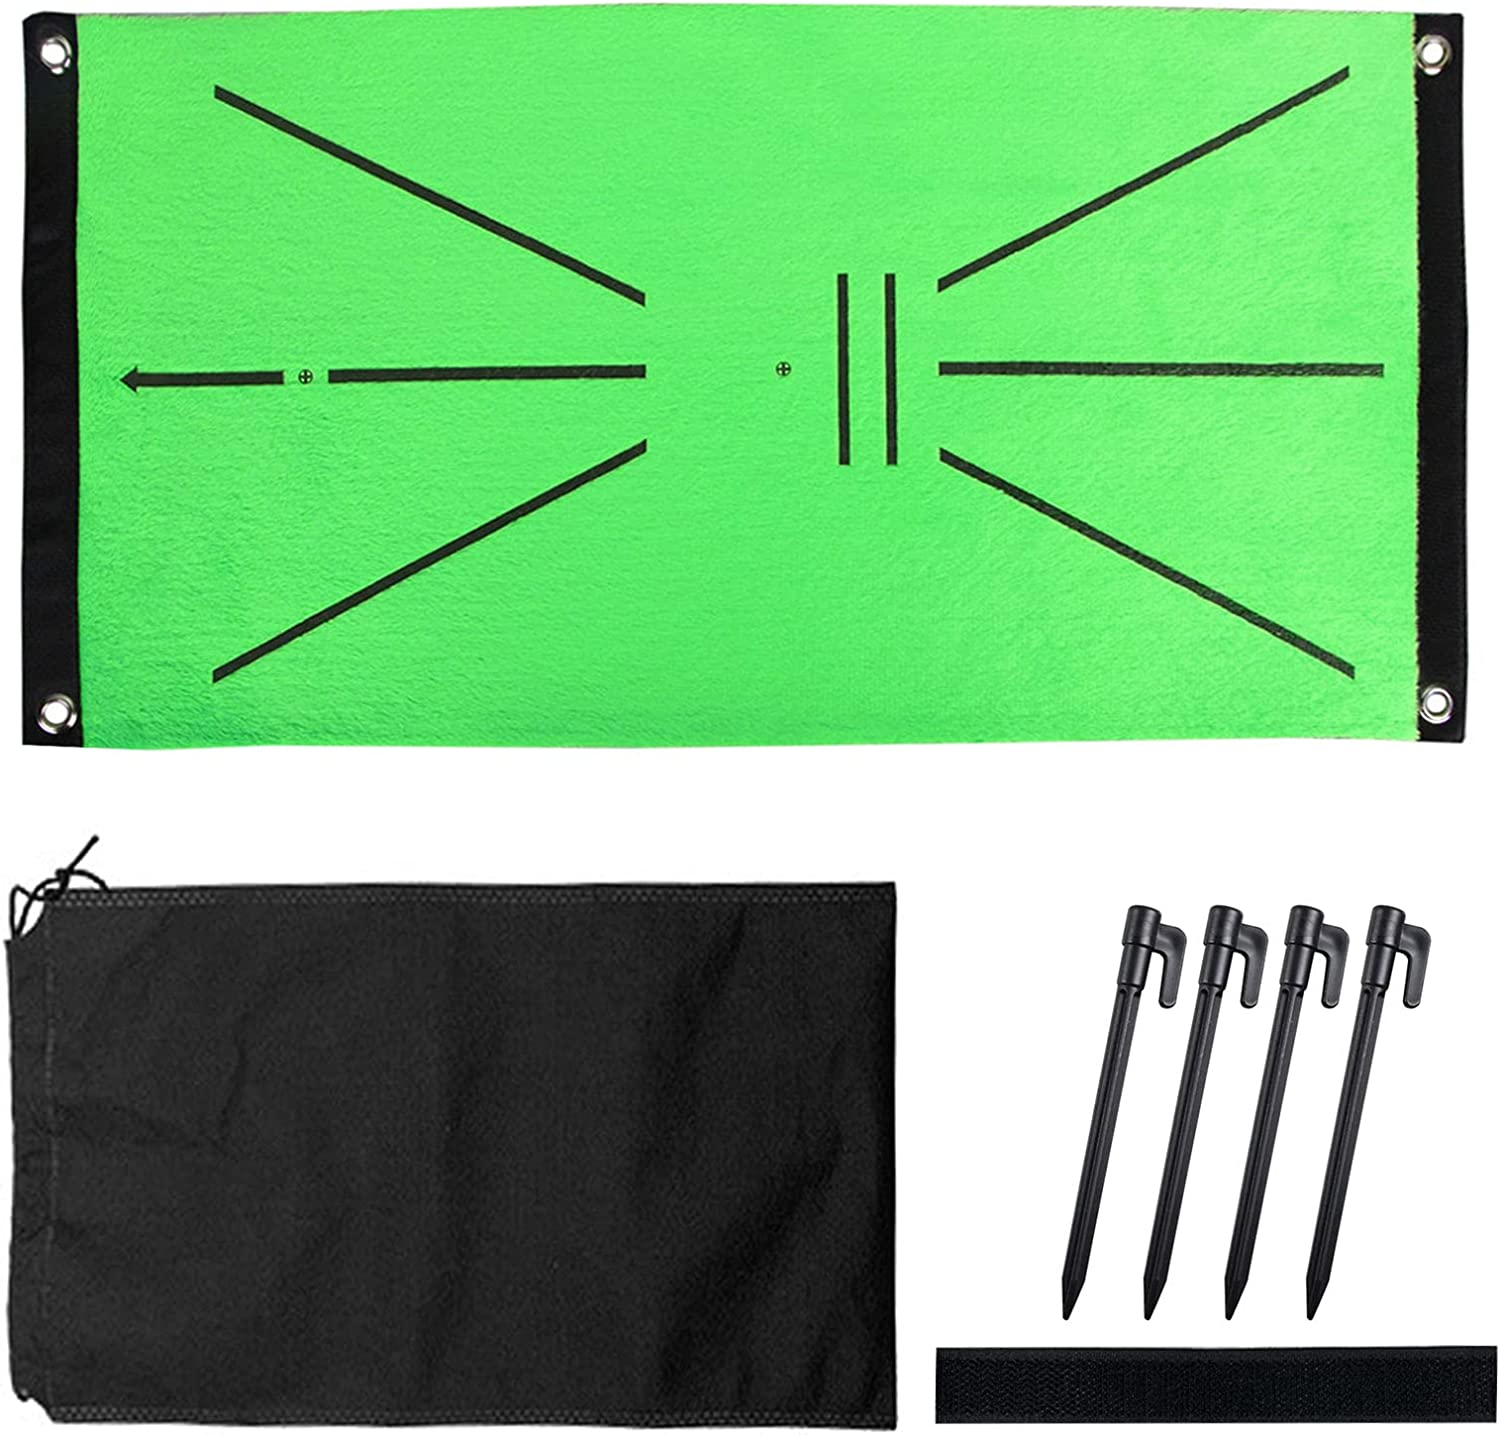 Animer and price revision Ananko Golf Training Mat for Mini Upgrade Pr Beginner 2021 Max 56% OFF